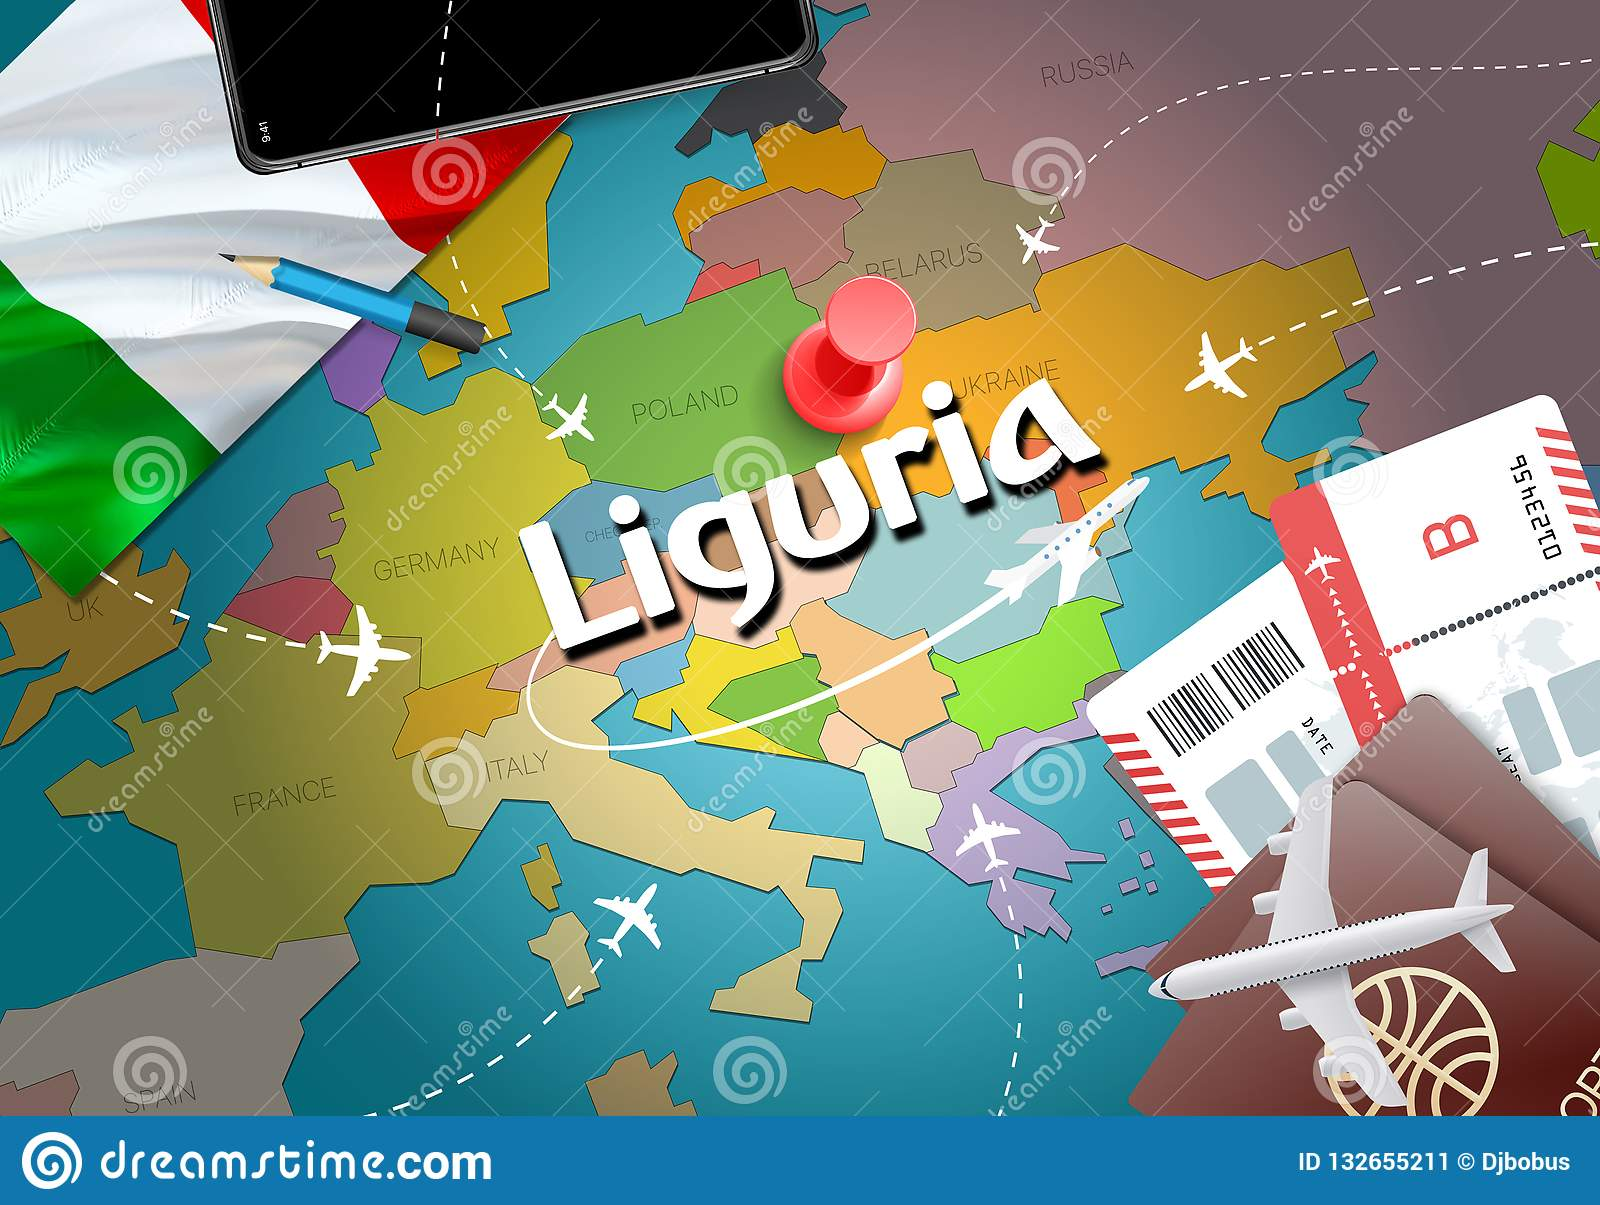 Tourism Destinations Liguria City Travel And Tourism Destination Concept Italy Flag